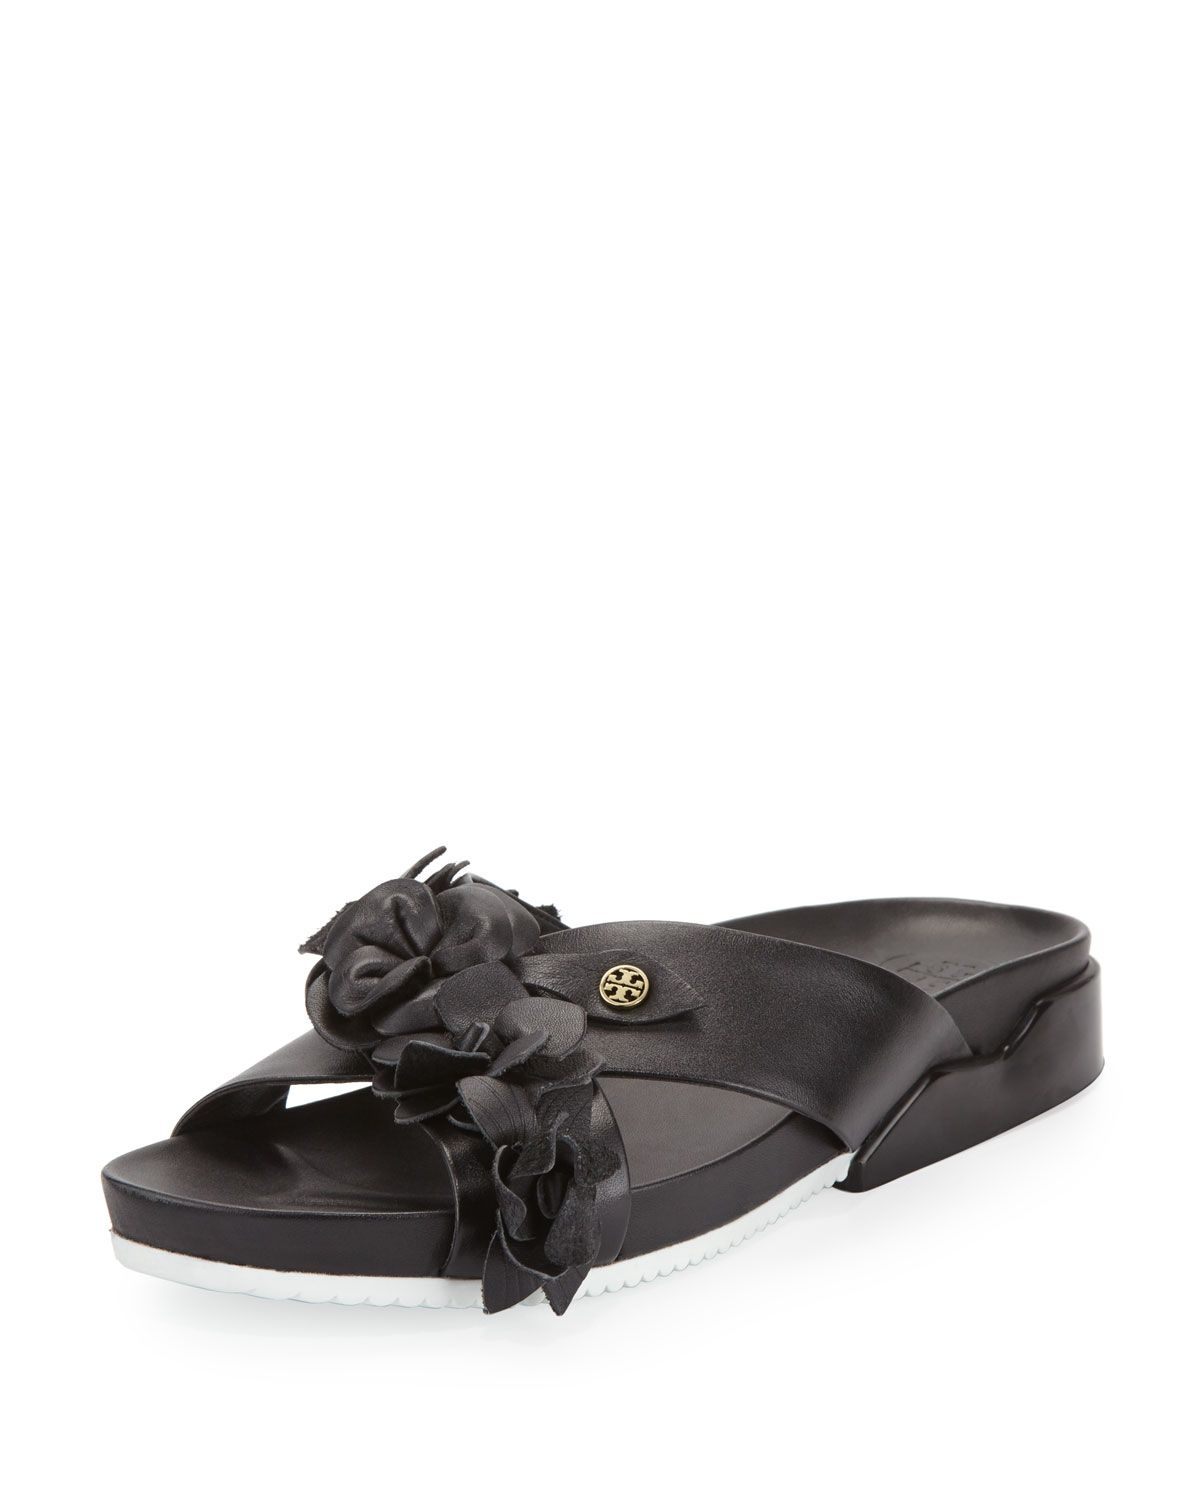 9ceee609907be Tory Burch Blossom Leather Slide Sandal